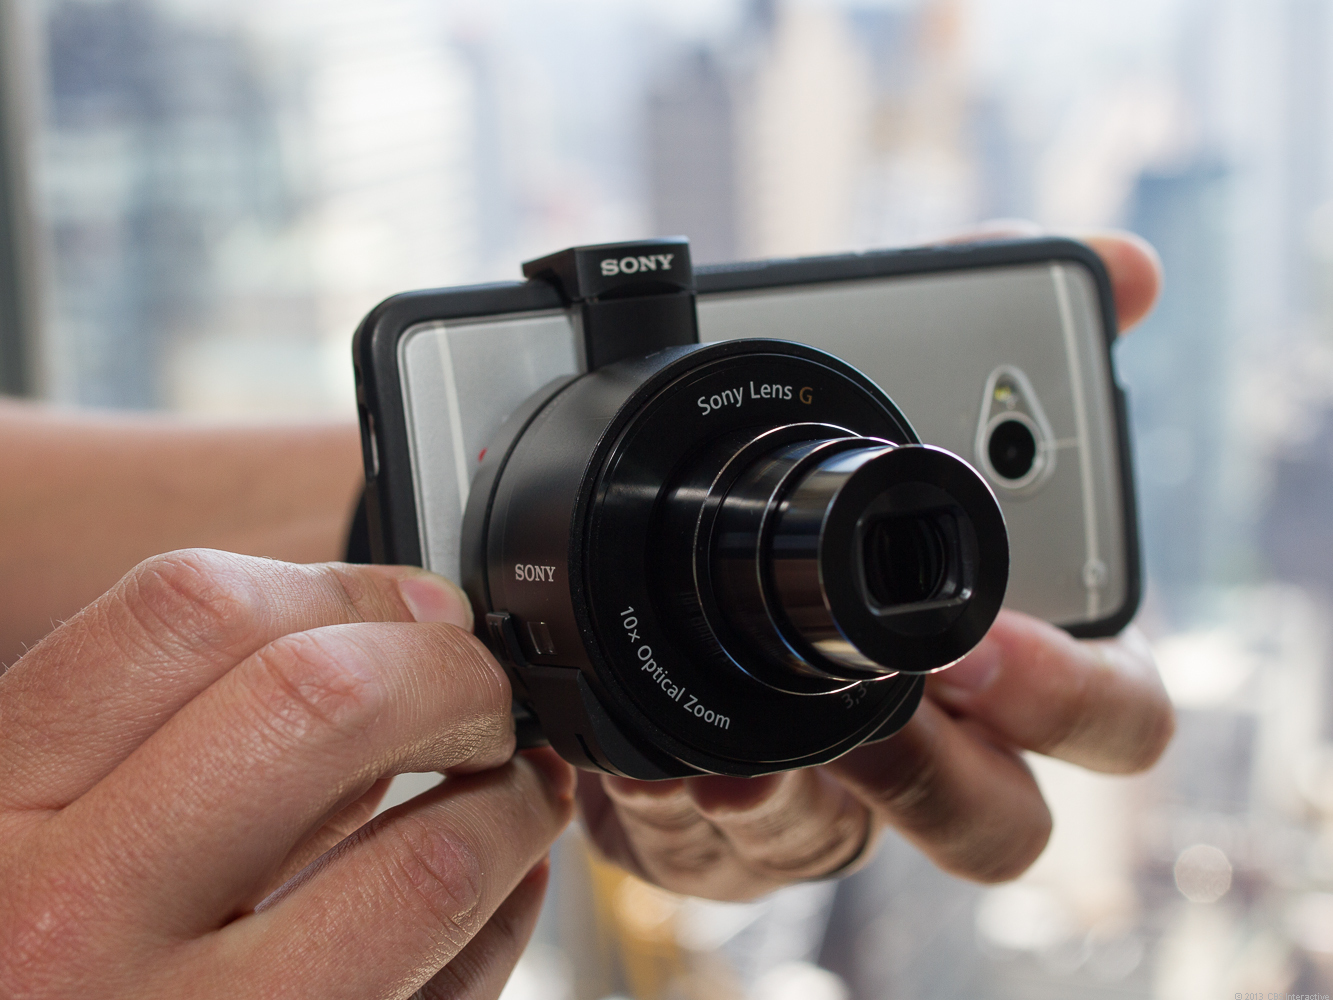 A lens-shaped body for your smartphone